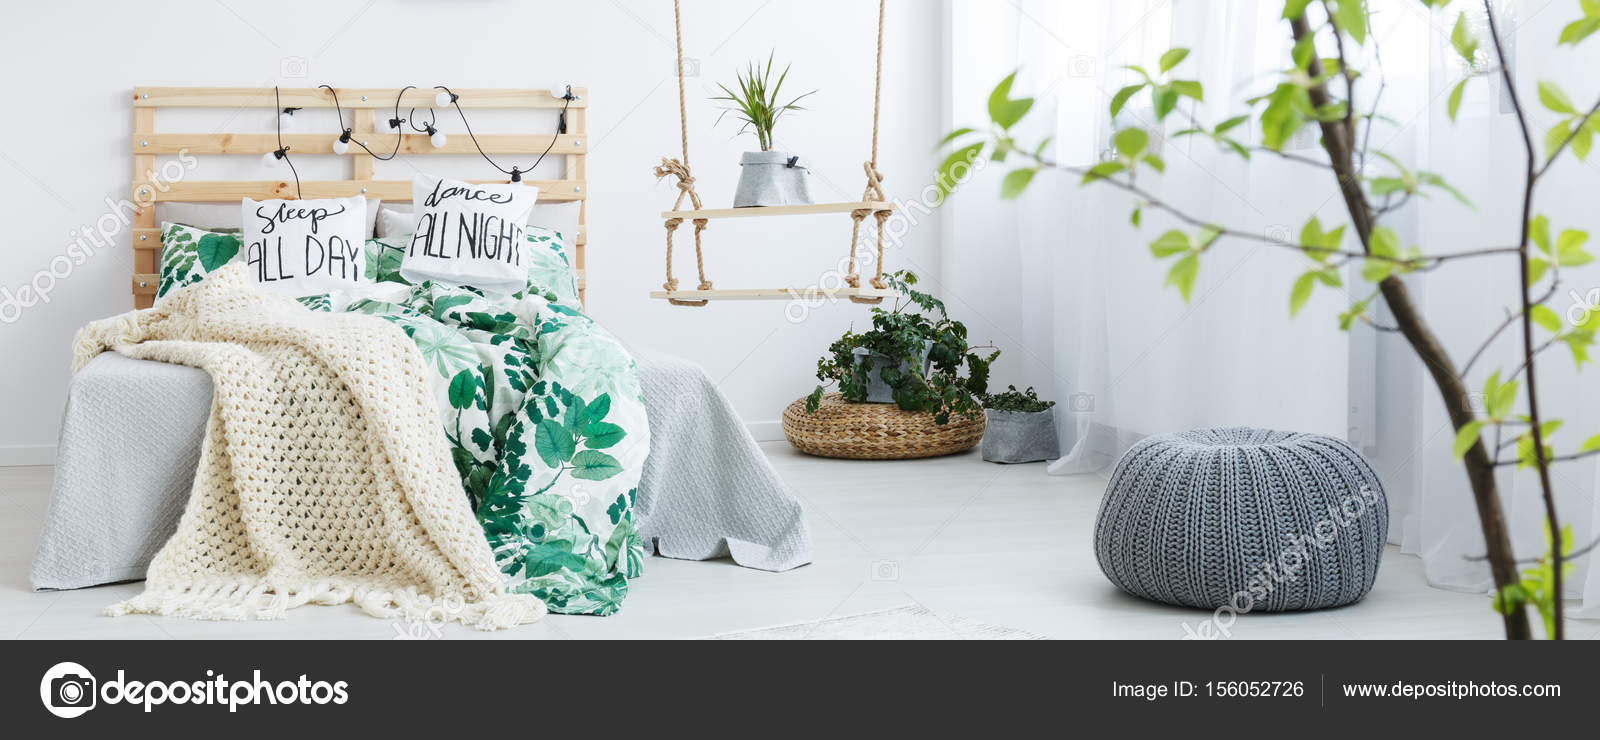 Messy bed in the room — Stock Photo © photographee.eu #156052726